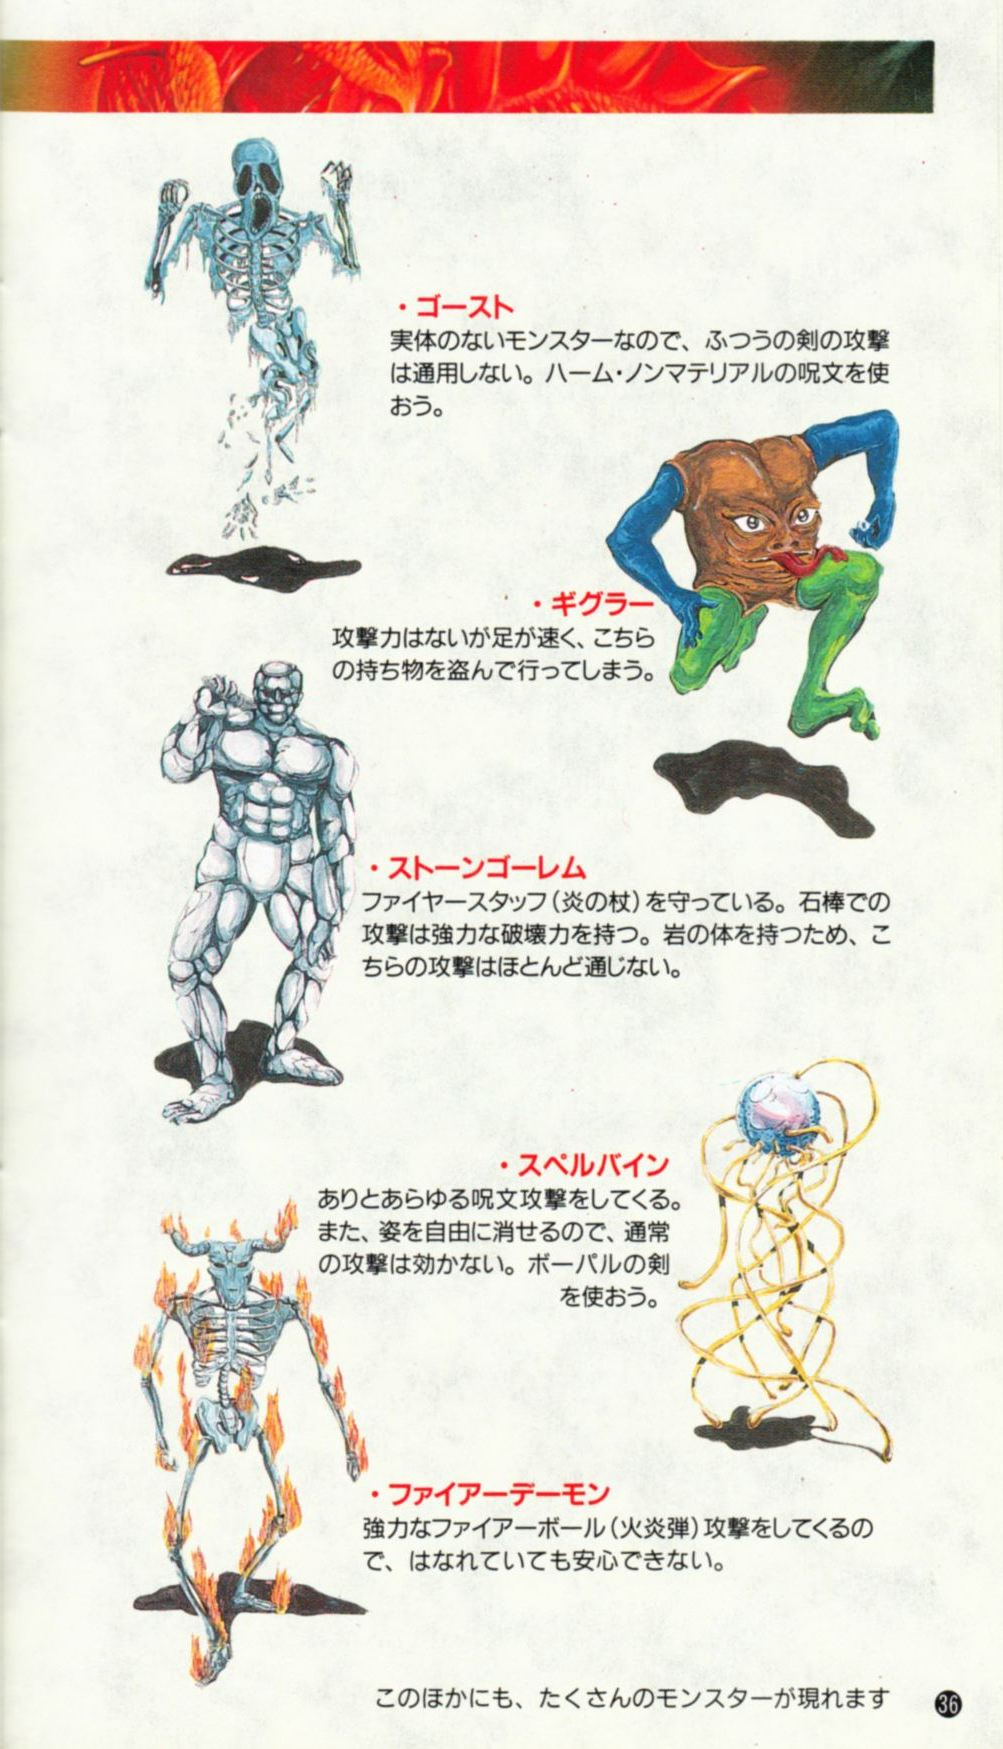 Game - Dungeon Master - JP - Super Famicom - Manual - Page 039 - Scan